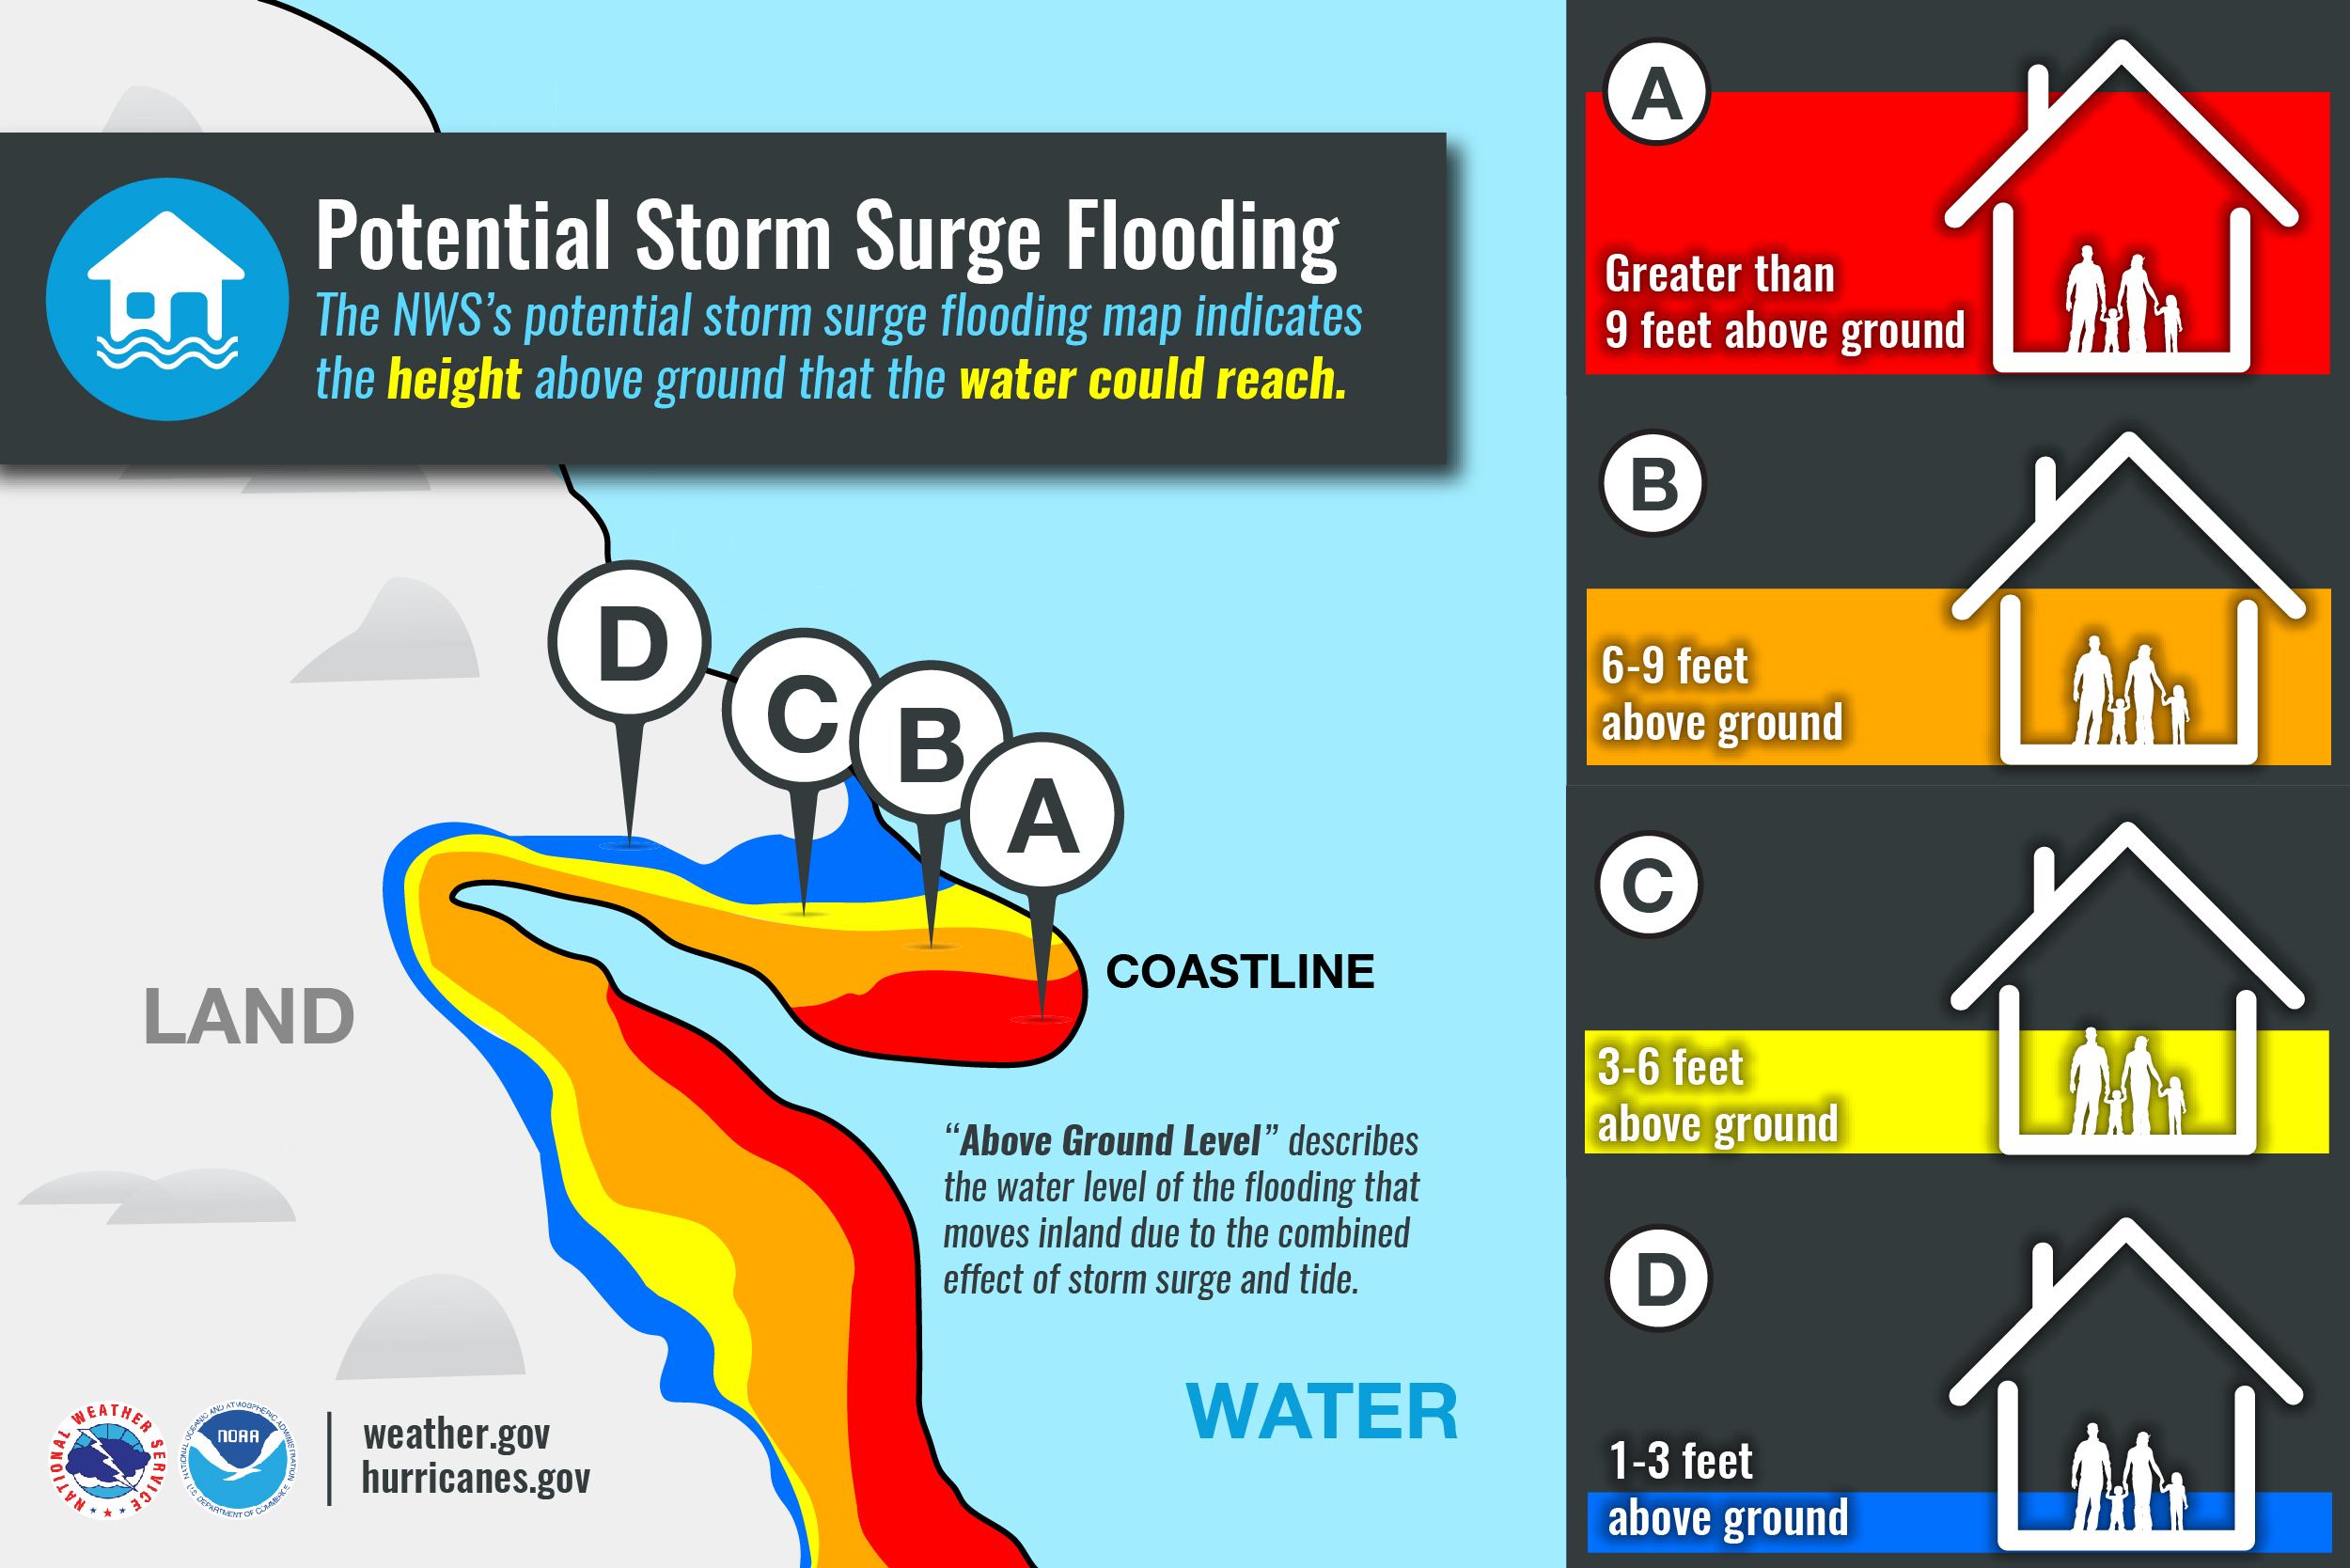 Potential Storm Surge Flooding: The NWS' potential storm surge flooding map indicates the height above ground that the water could reach. Above Ground Level describes the water level of the flooding that moves inland due to the combined effect of storm surge and tide.